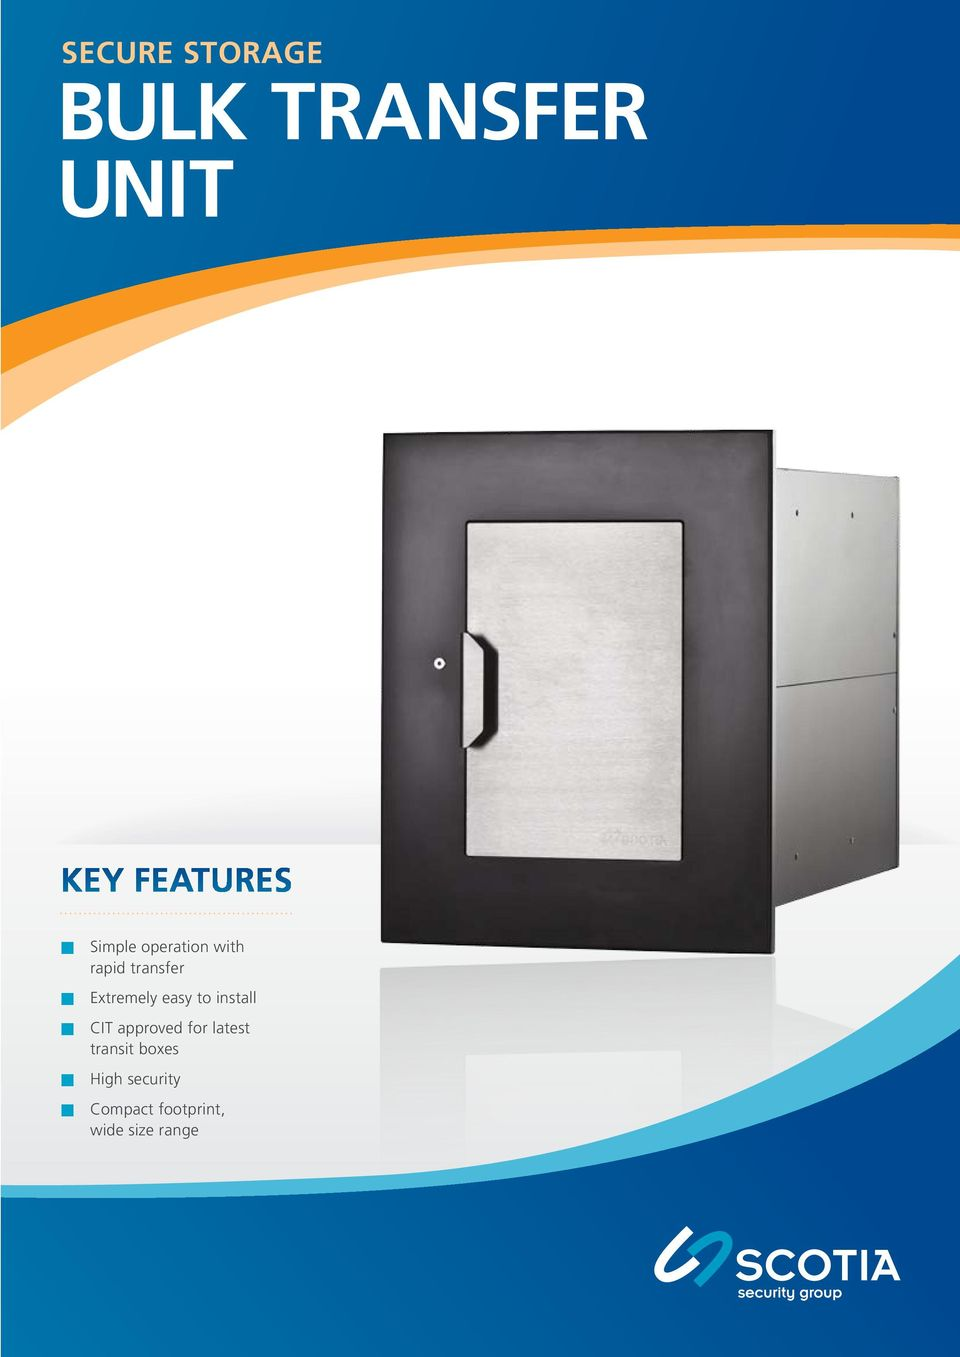 easy to install CIT approved for latest transit